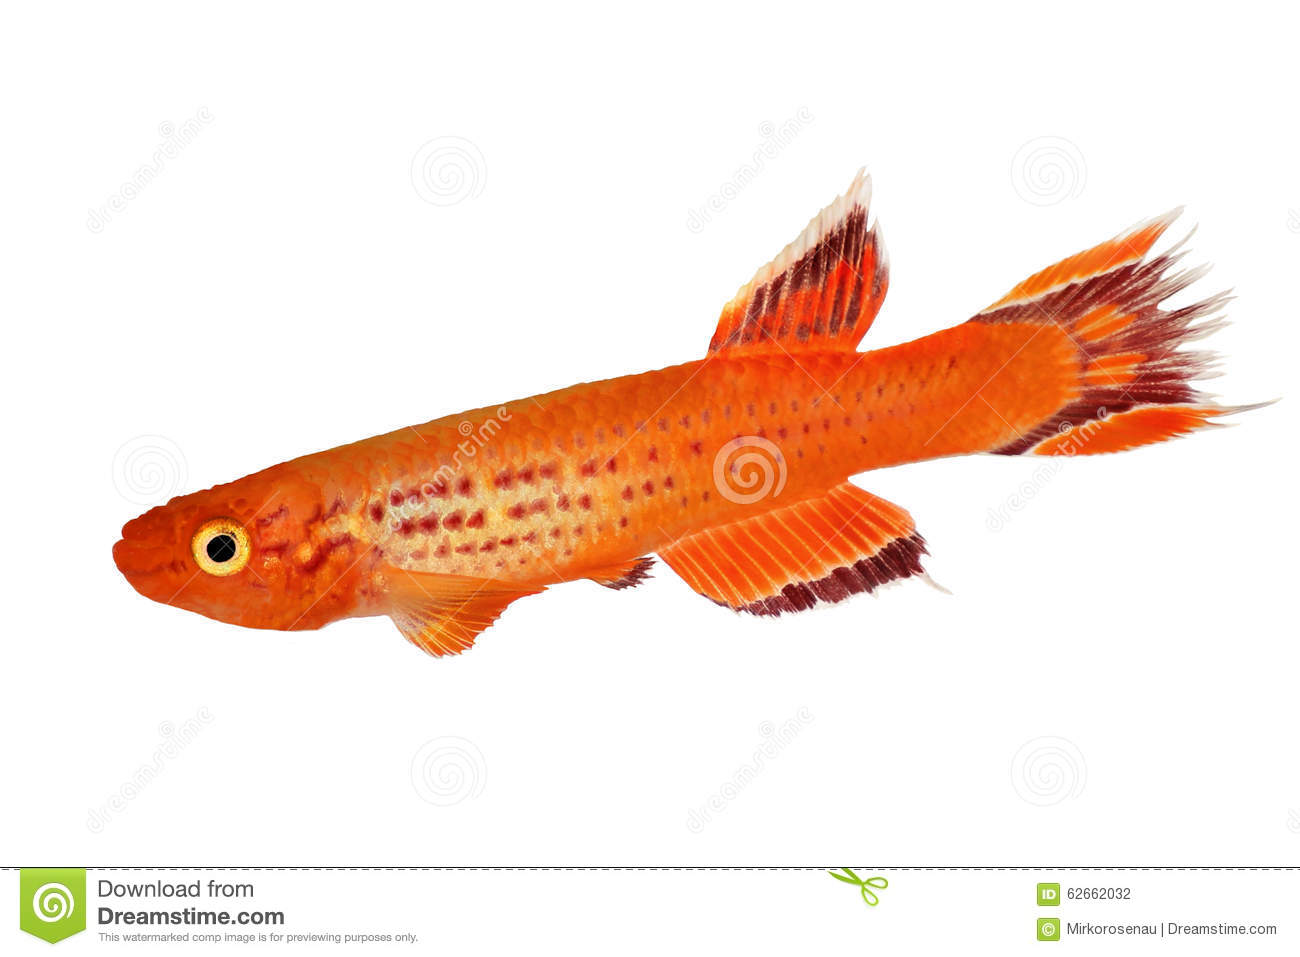 Killi Aphyosemion austral Hjersseni gold Aquarium fish isolated on White